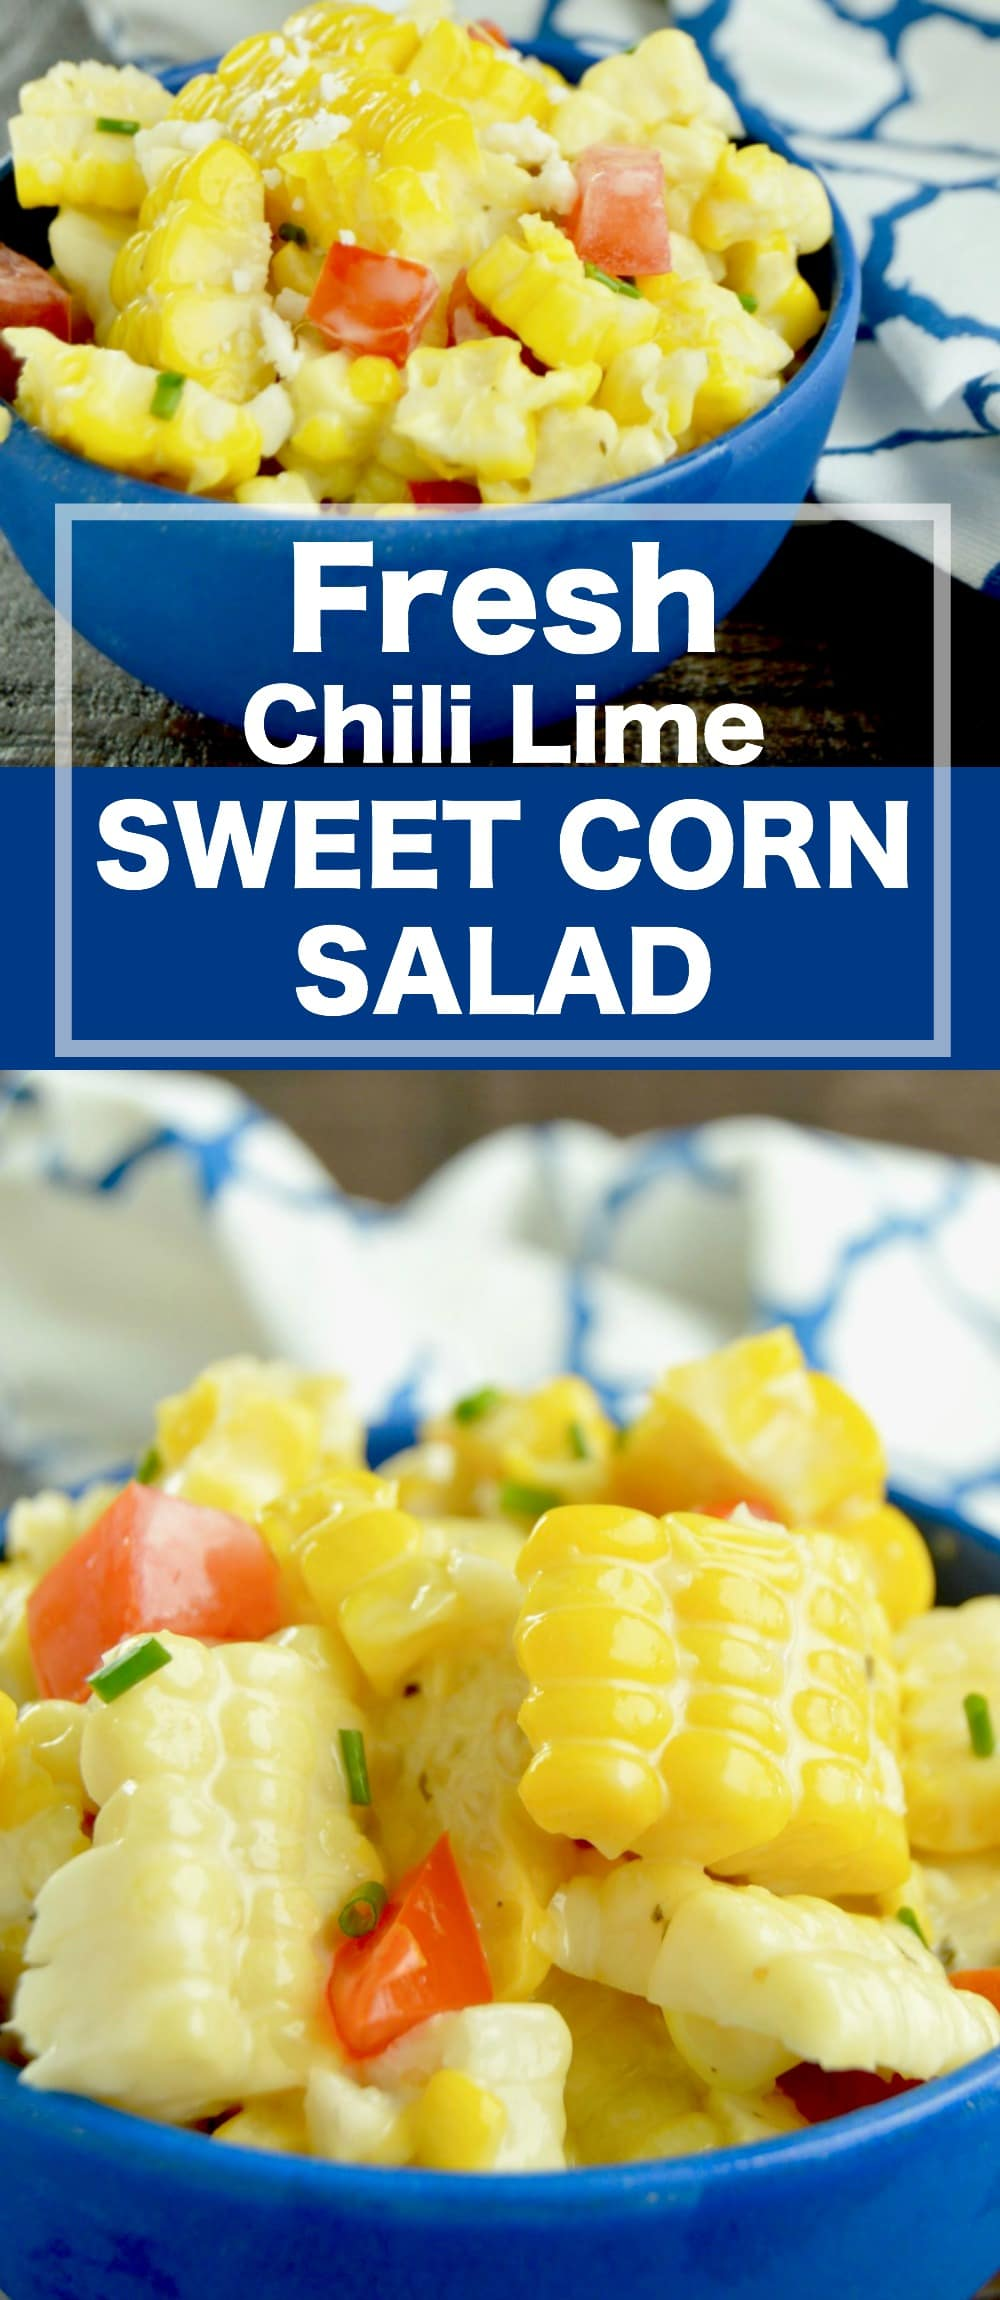 Fresh Chili Lime Sweet Corn Salad is THE ideal BBQ side dish to bring for any party this summer!  Sweet, succulent corn, fresh juicy tomatoes blended with a cold chili lime dressing.